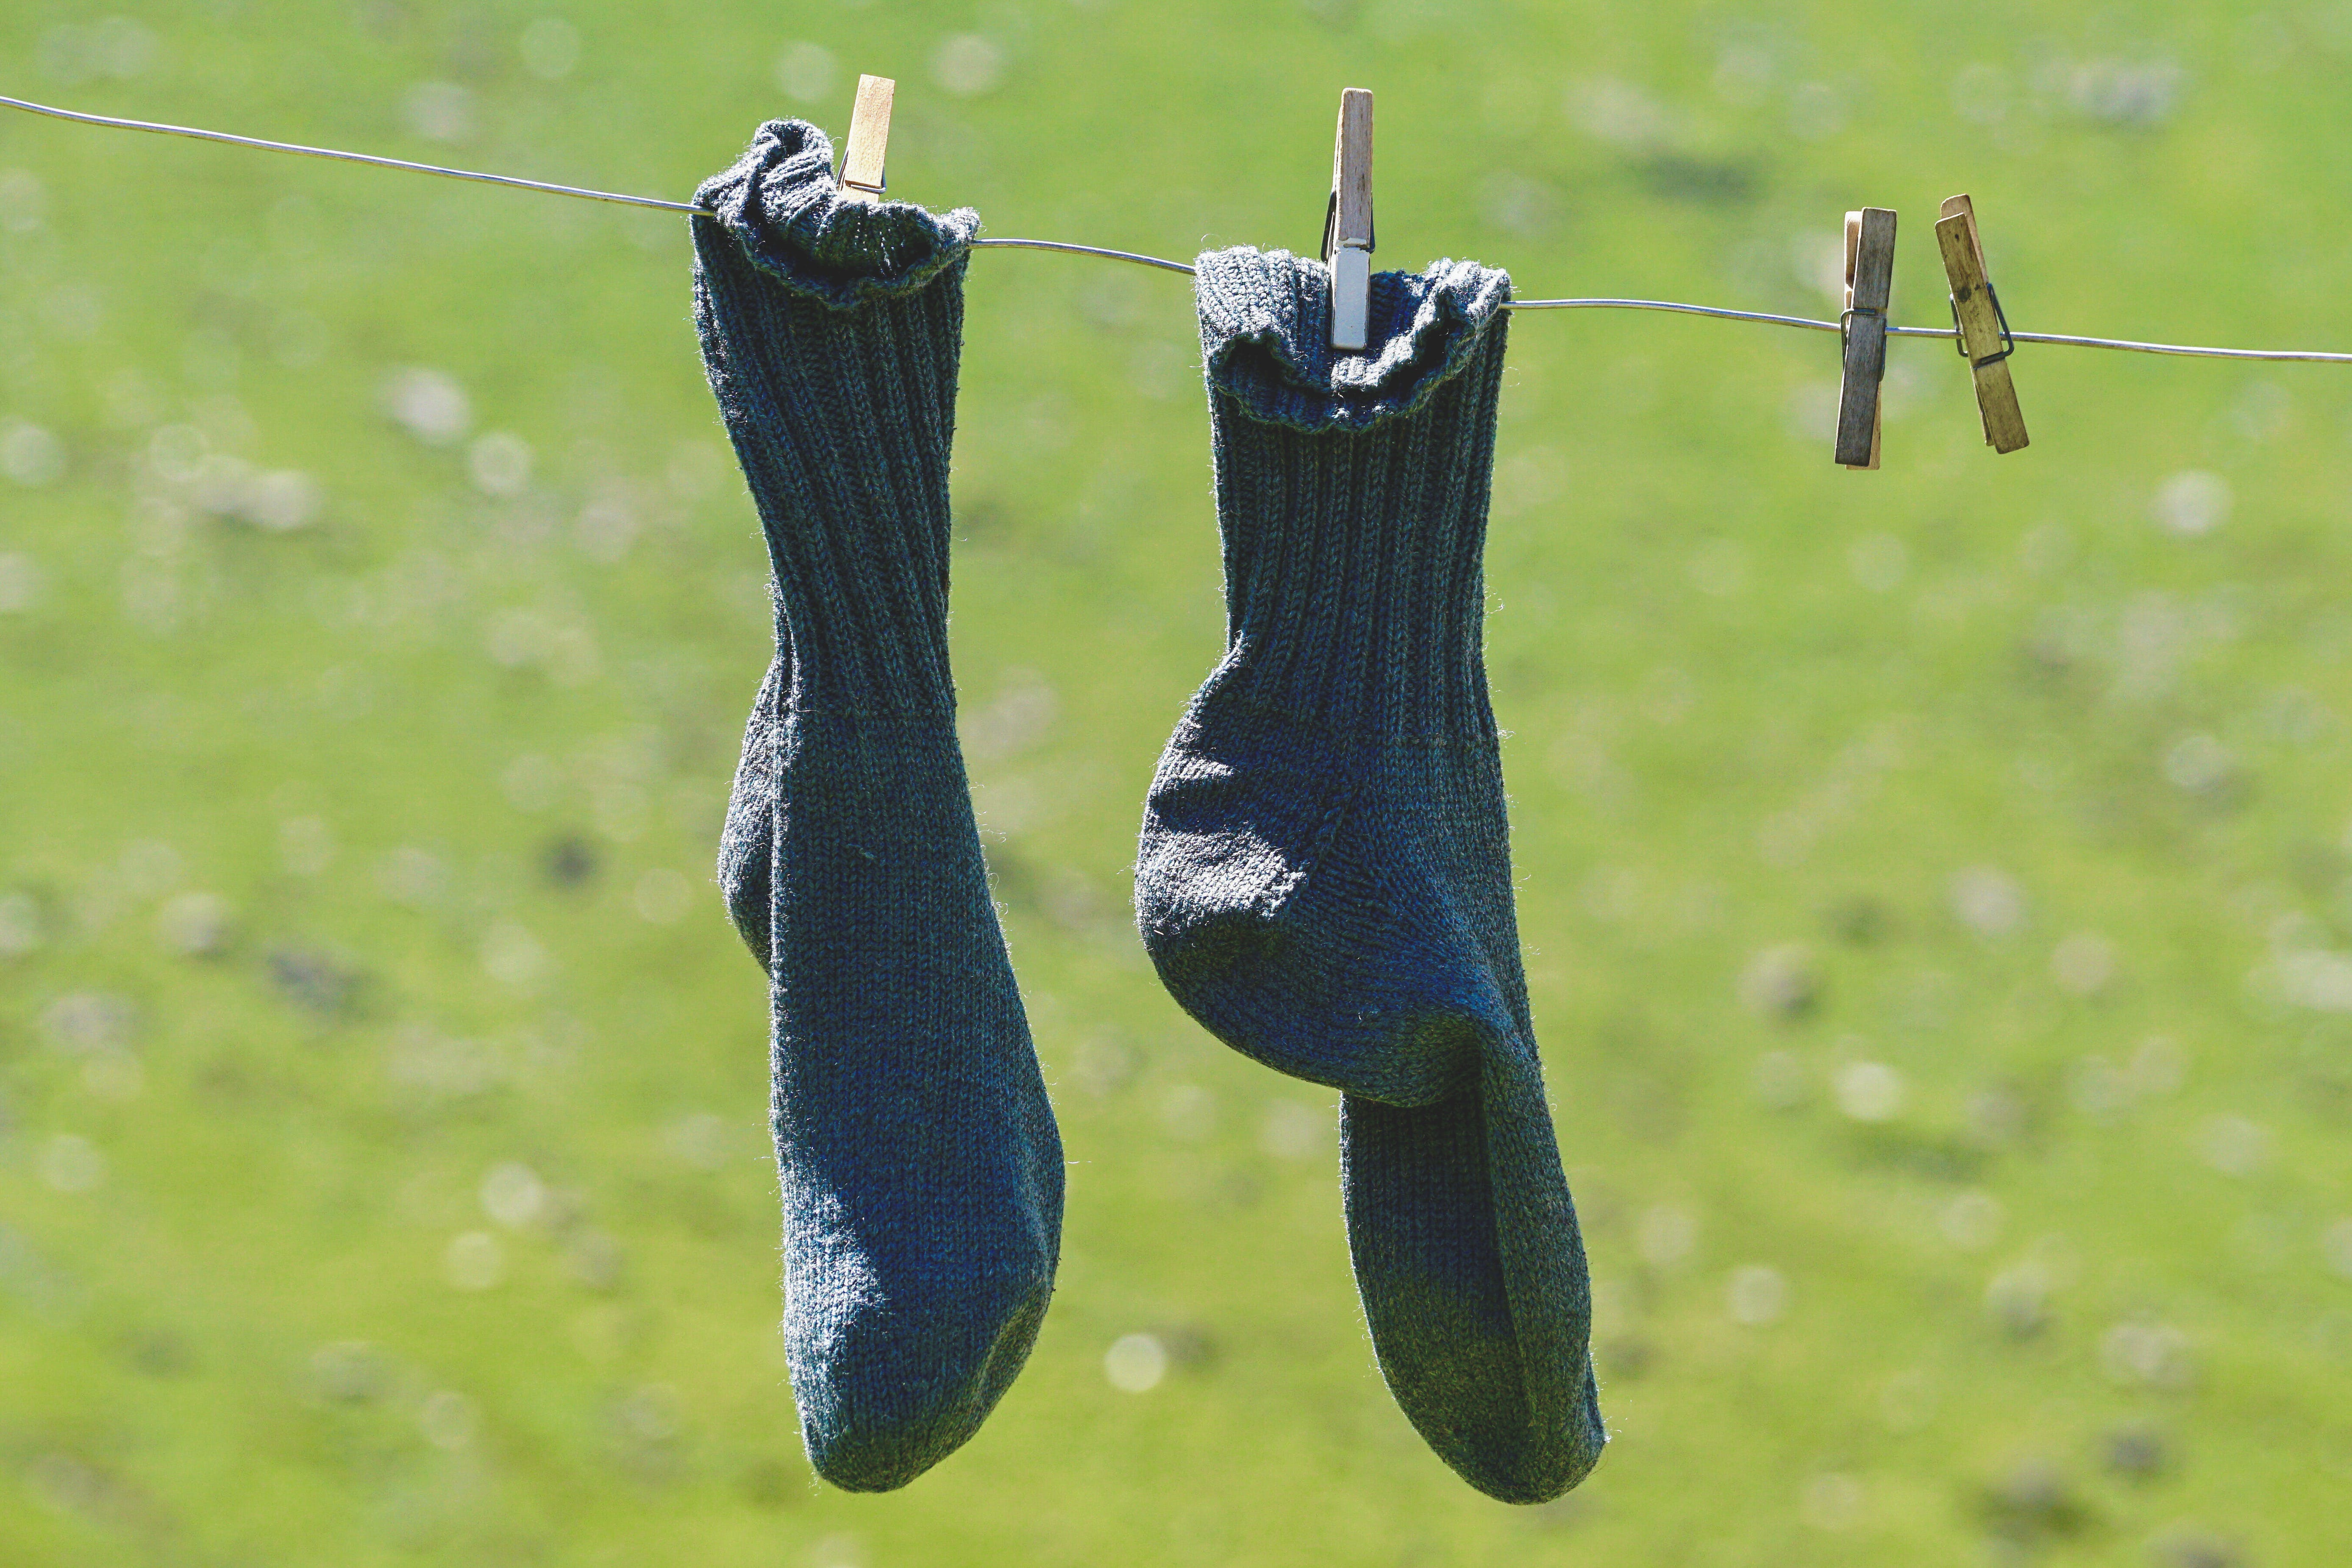 Pair Of Blue Socks Hanging